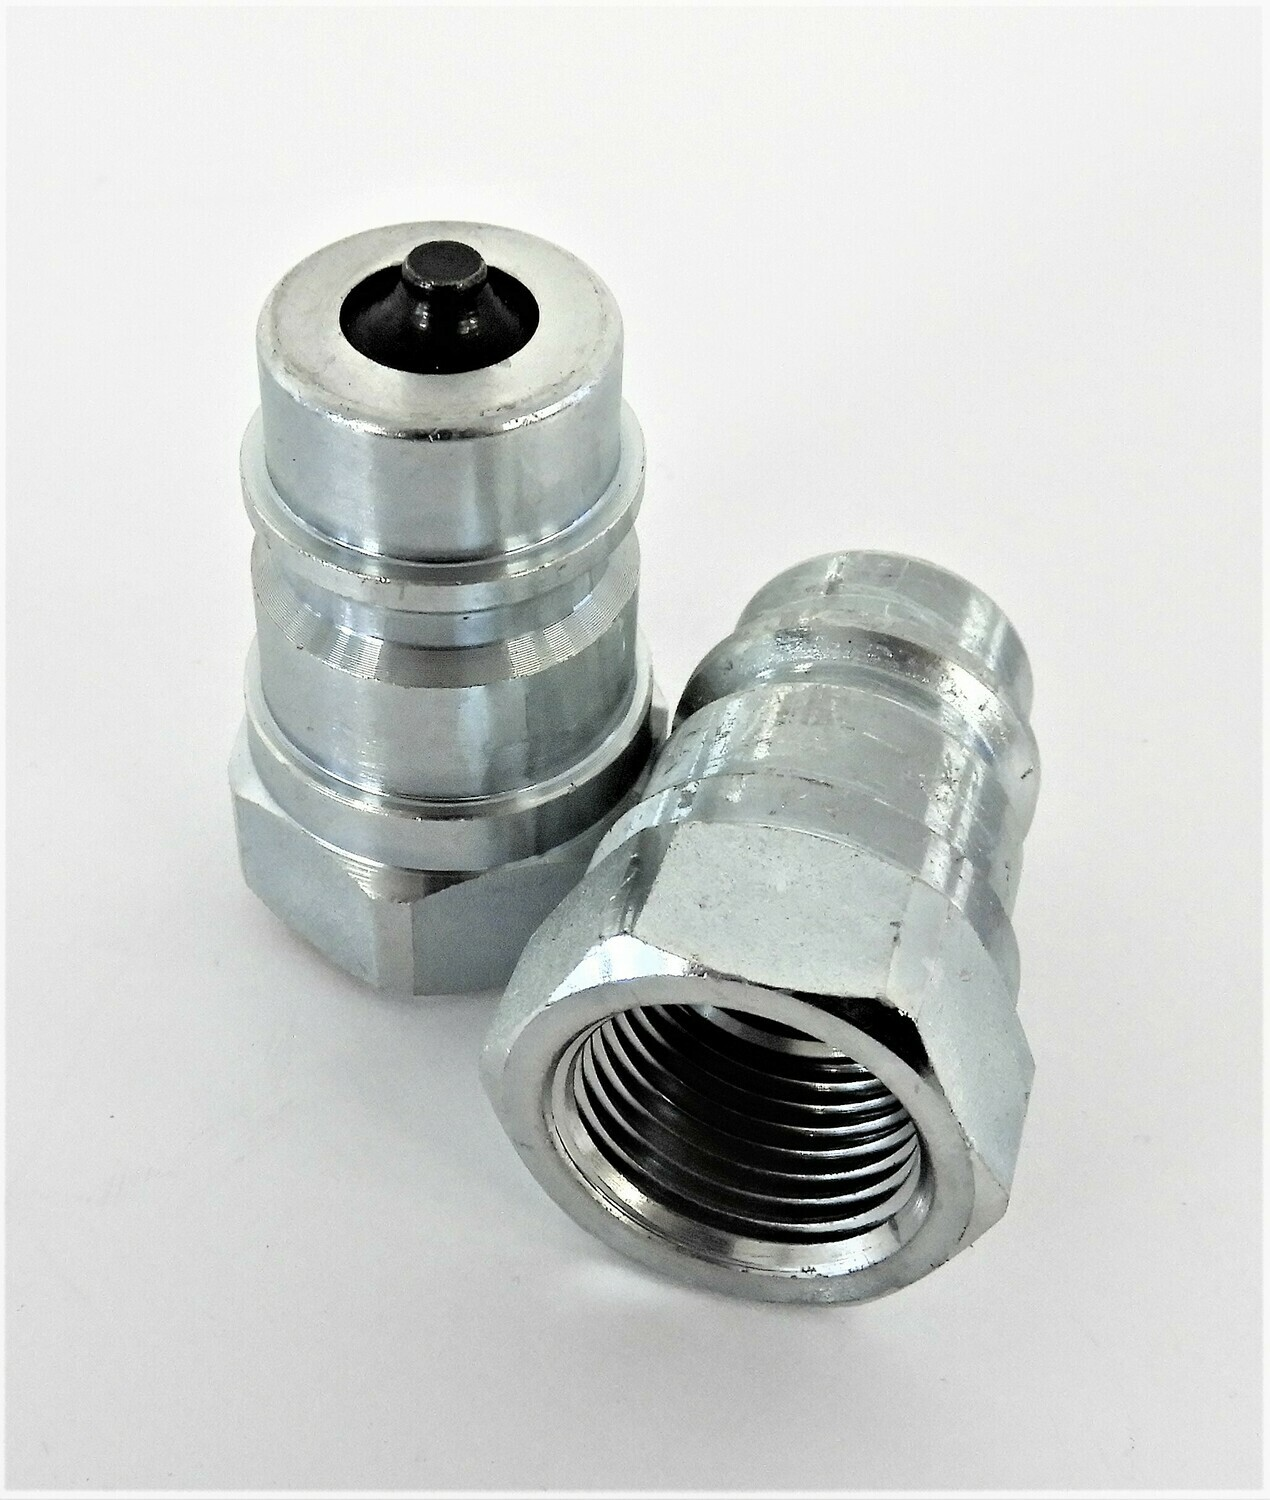 Hydraulic Coupling Poppet MALE ONLY  side ISO 7241-1 Series A 4400 PSI 1/4